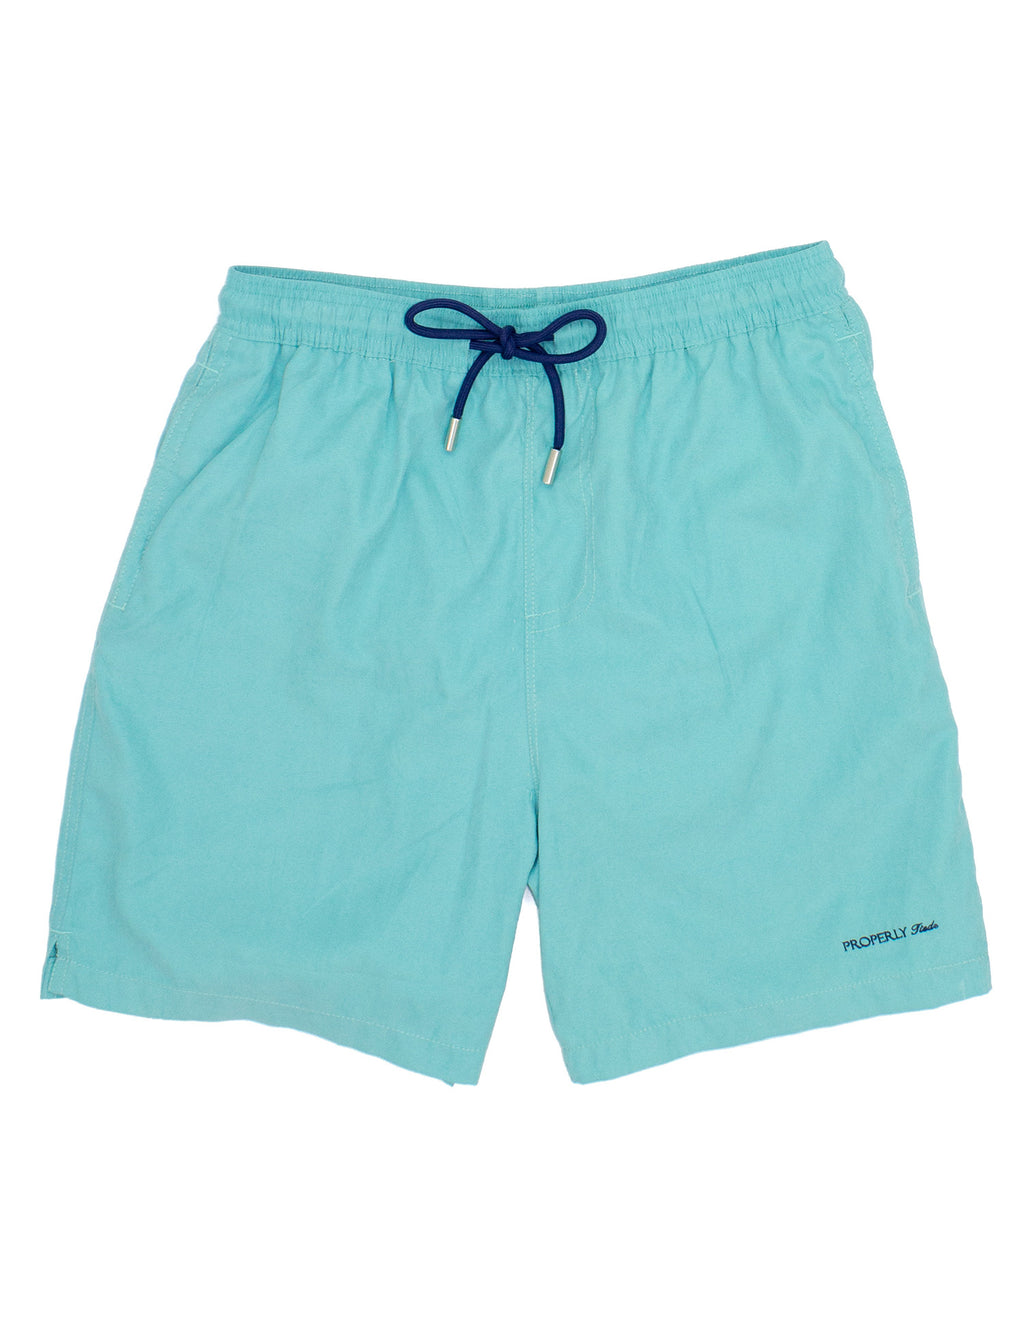 Properly Tied Boys Swim Trunks - Seafoam